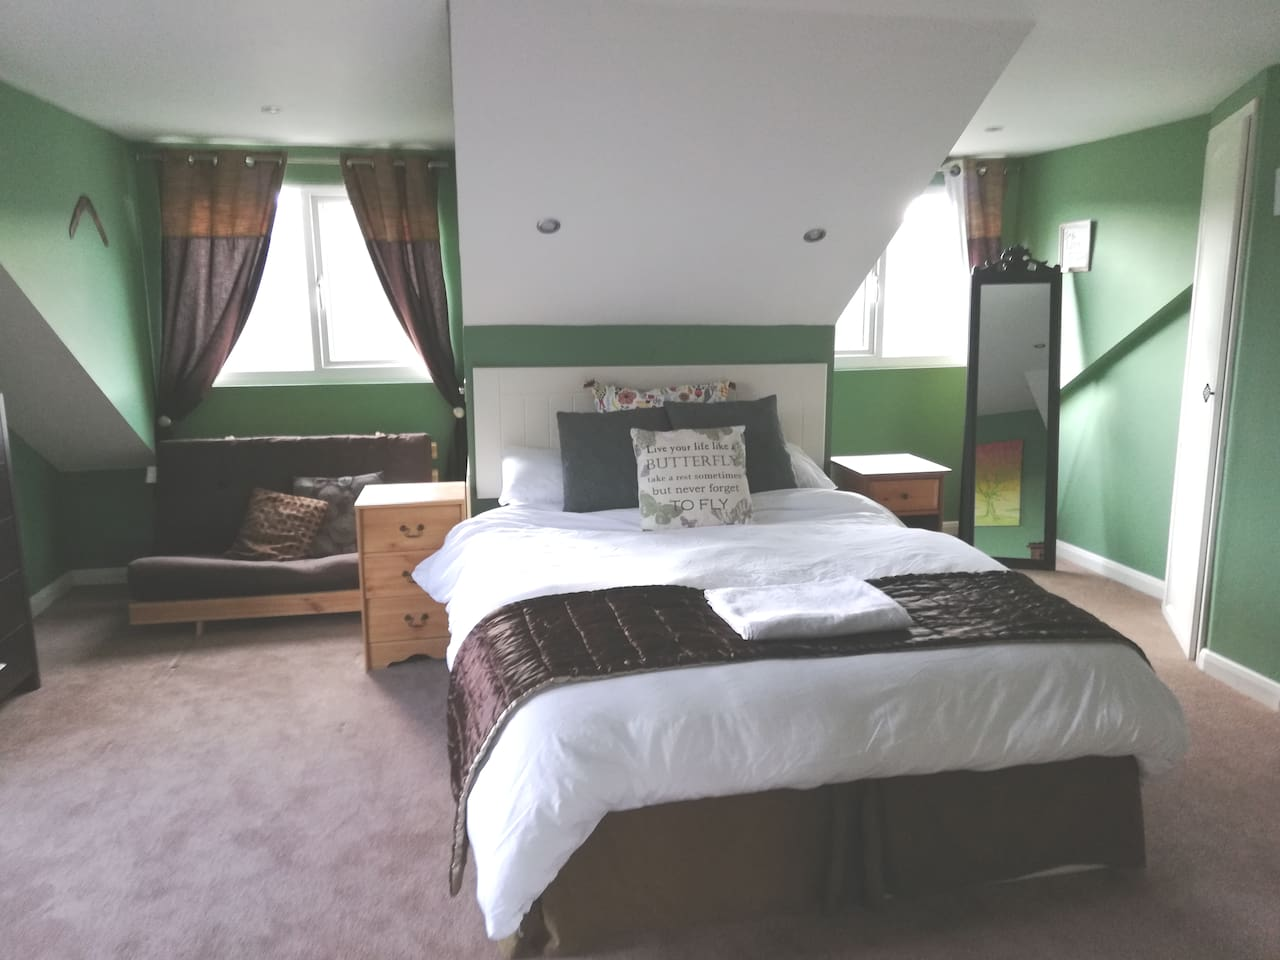 King sized bed in a light and comfortable room.